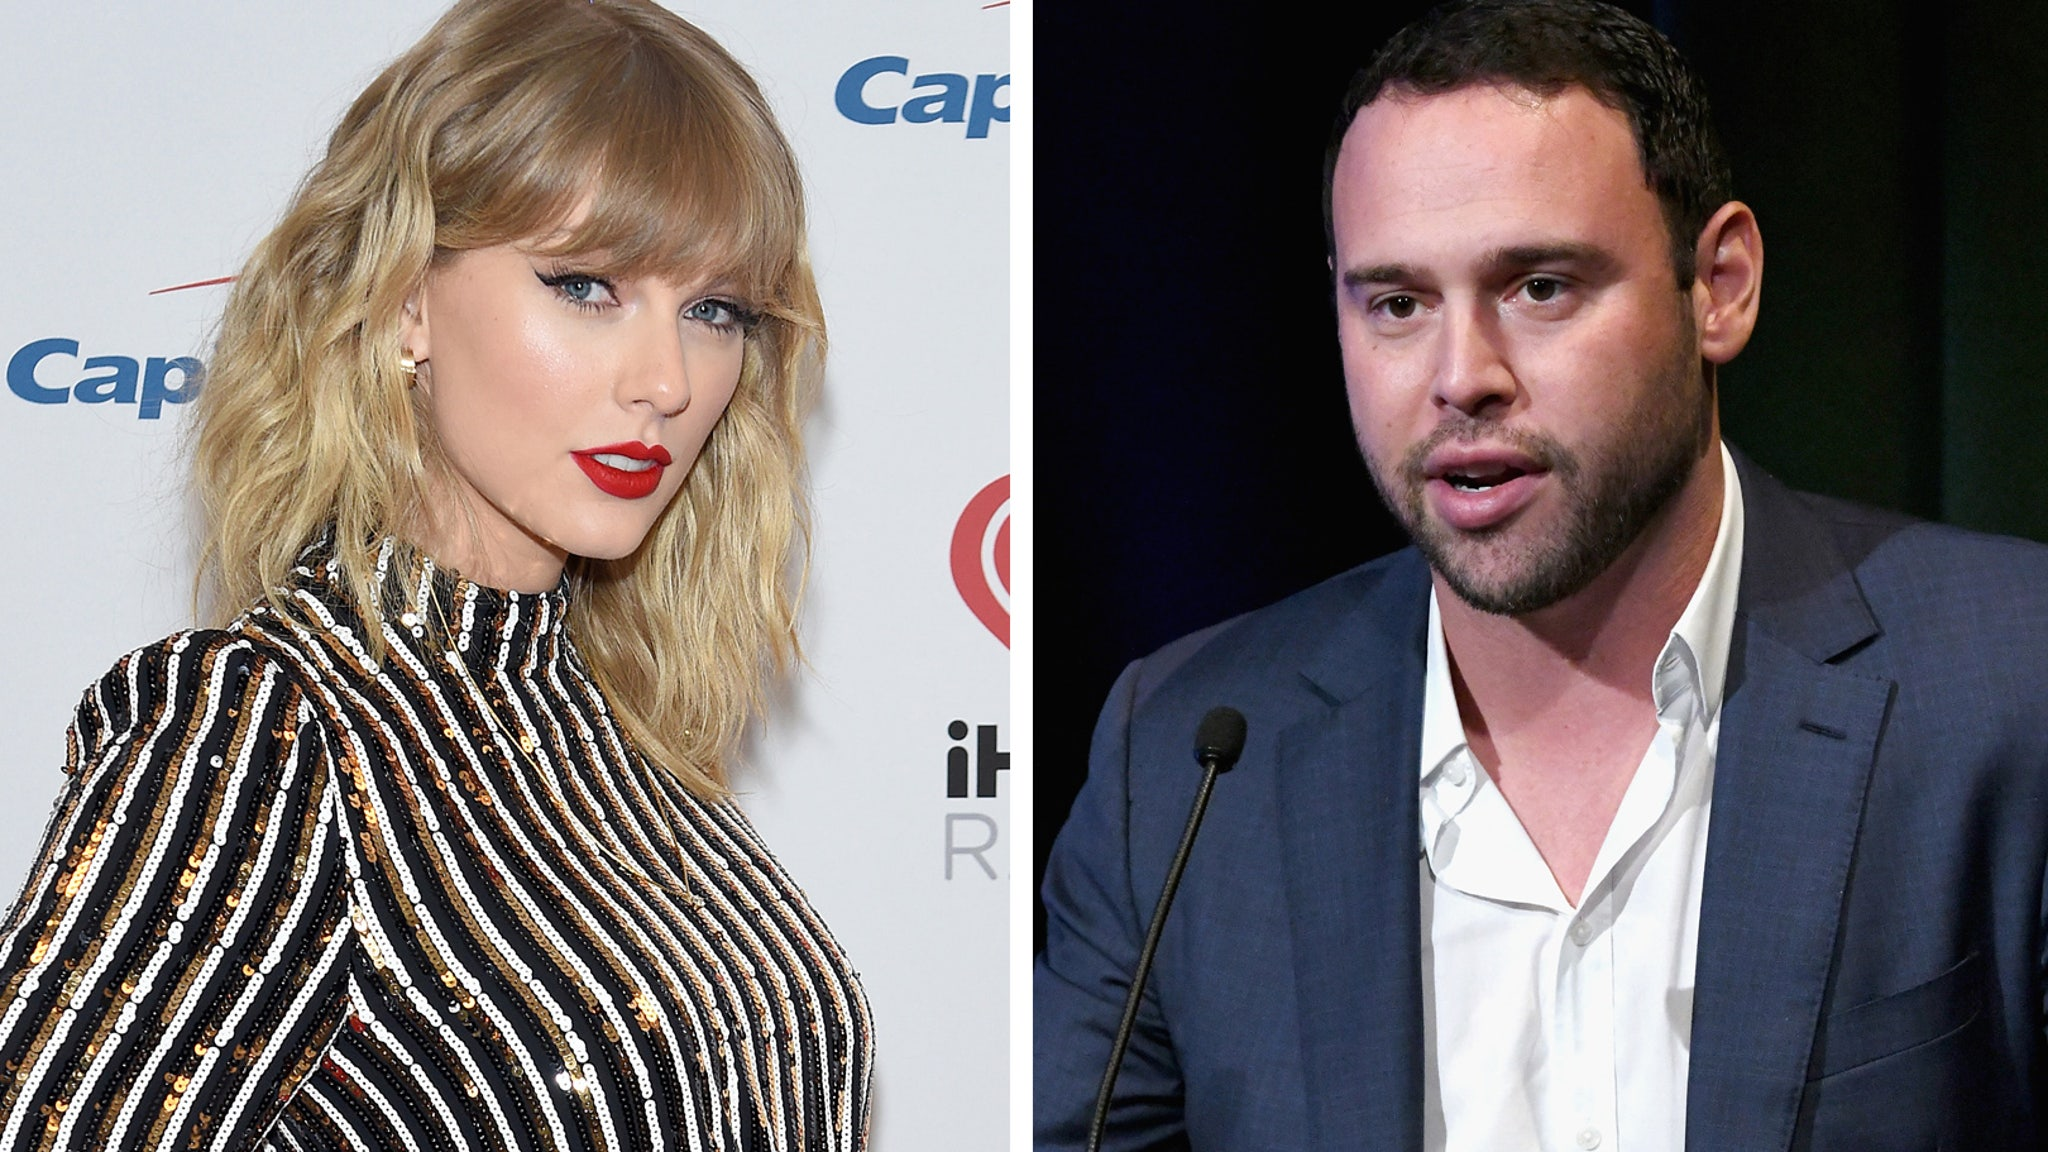 Why Scooter Braun Regrets His Fight With Taylor Swift